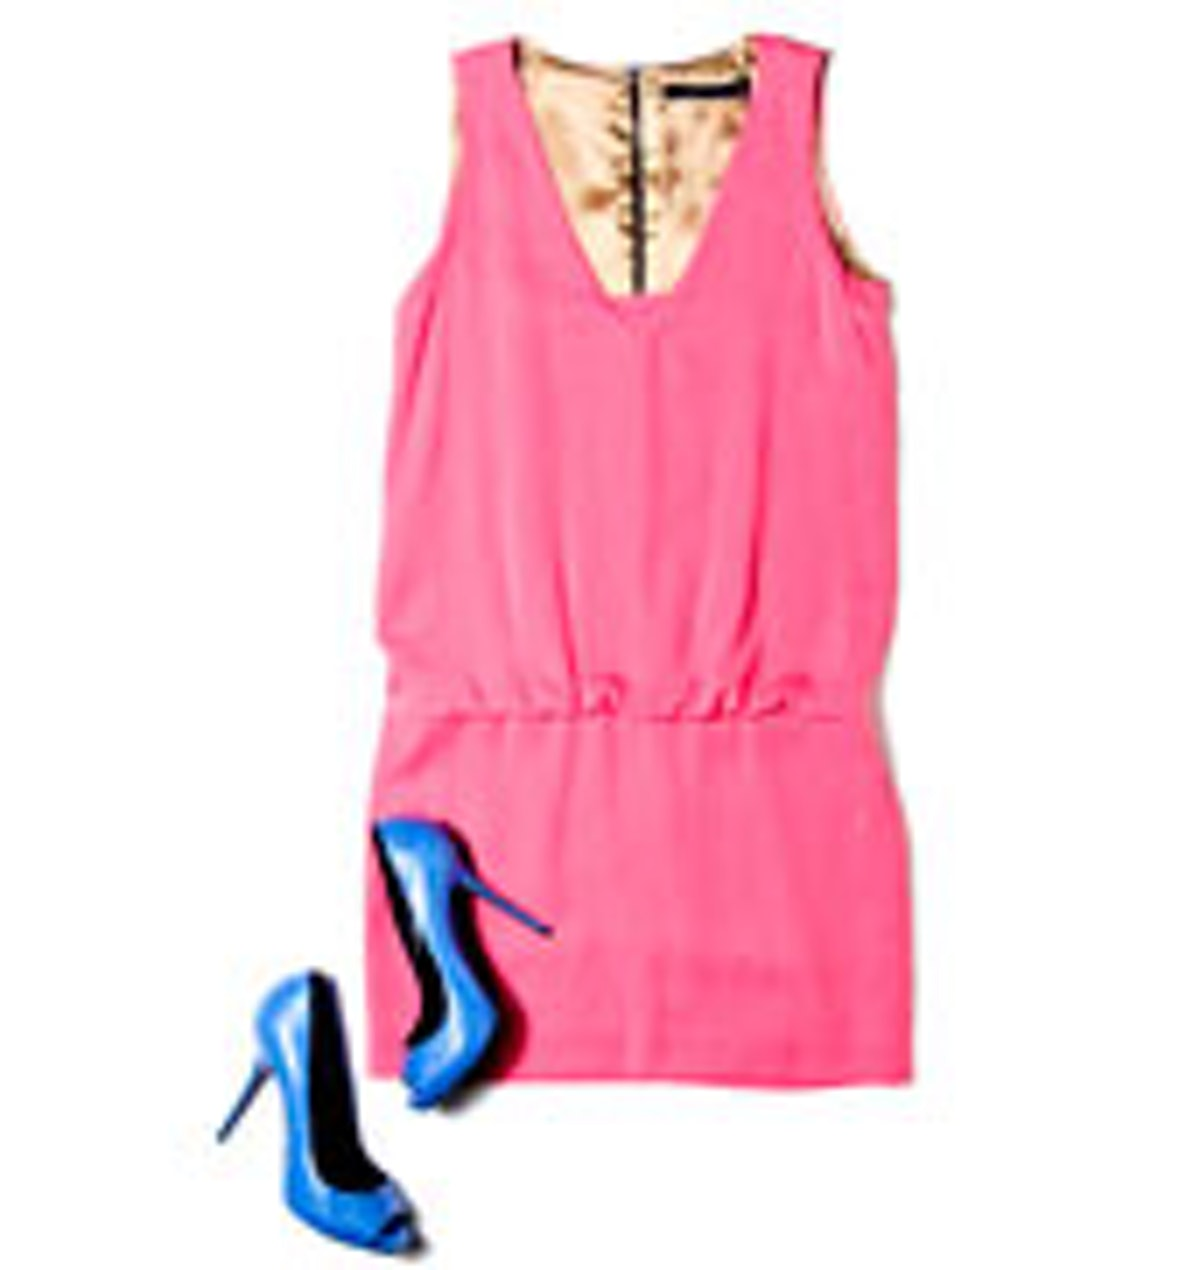 fass-spring-fashion-trends-search.jpg